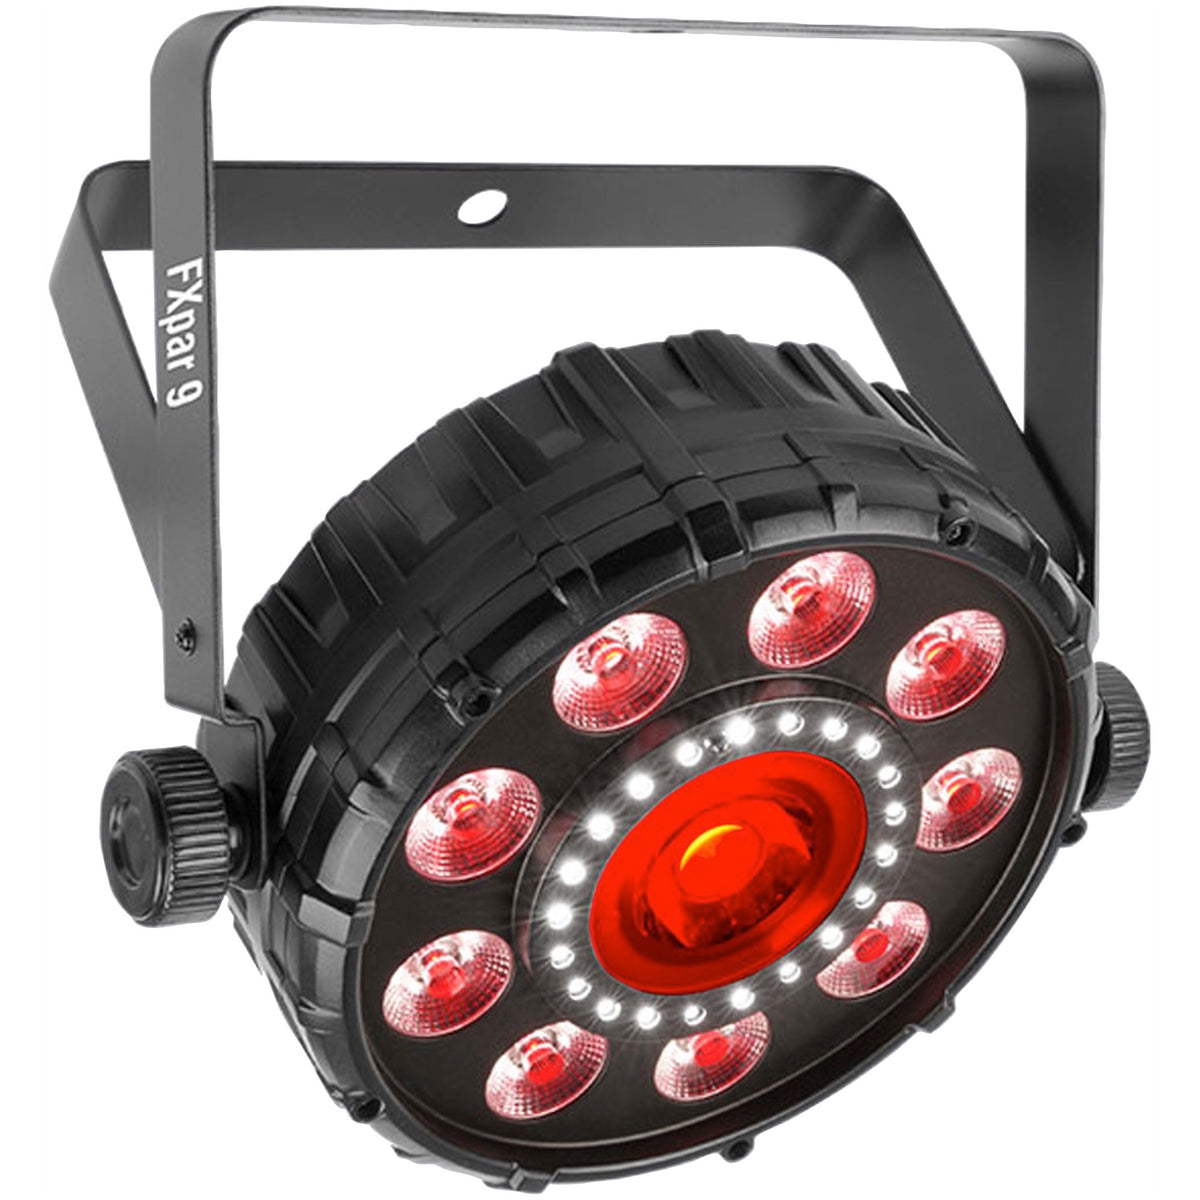 Chauvet DJ FXpar 9 Light